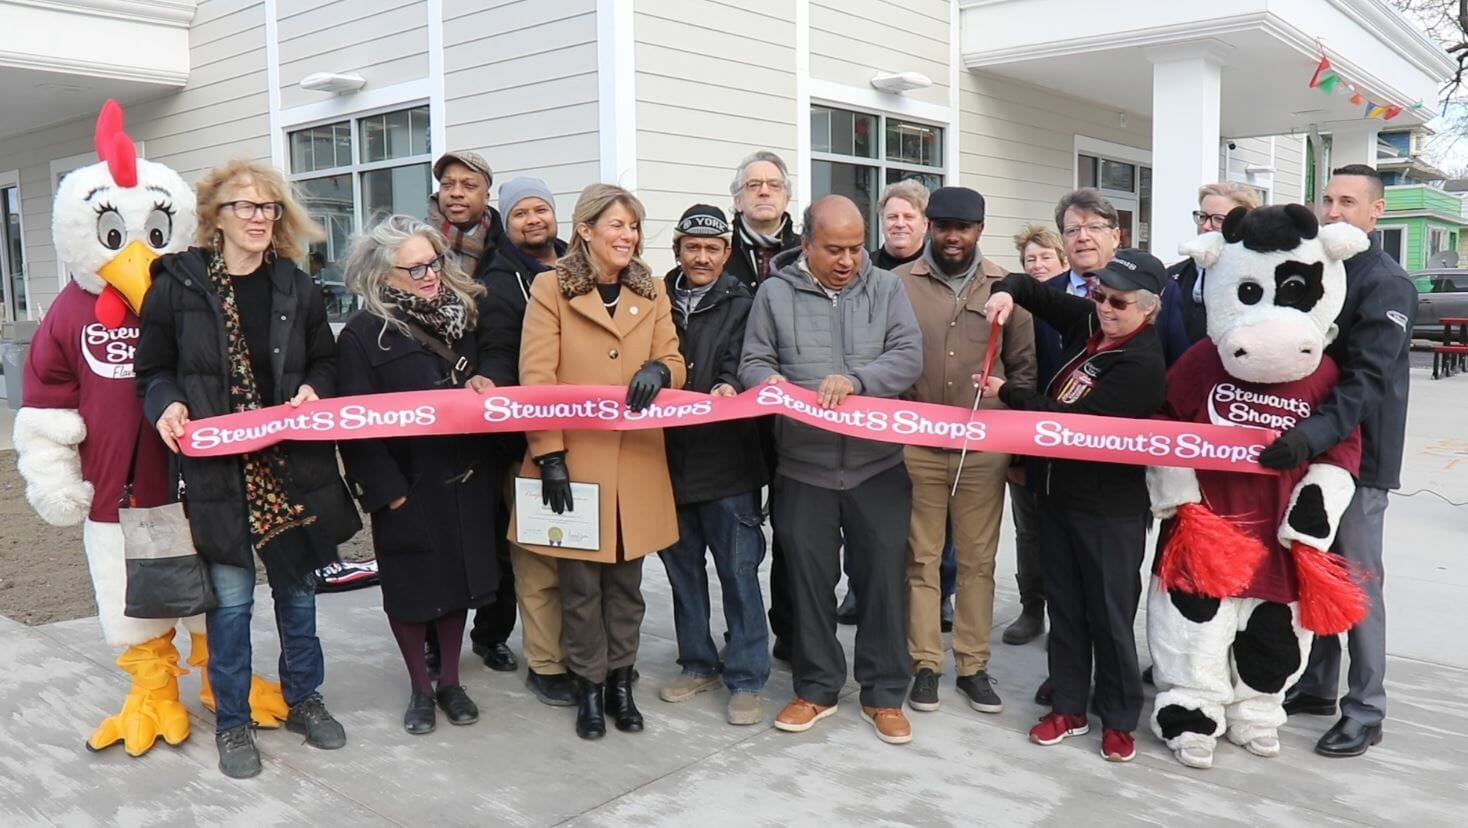 Ribbon Cutting with Scissors